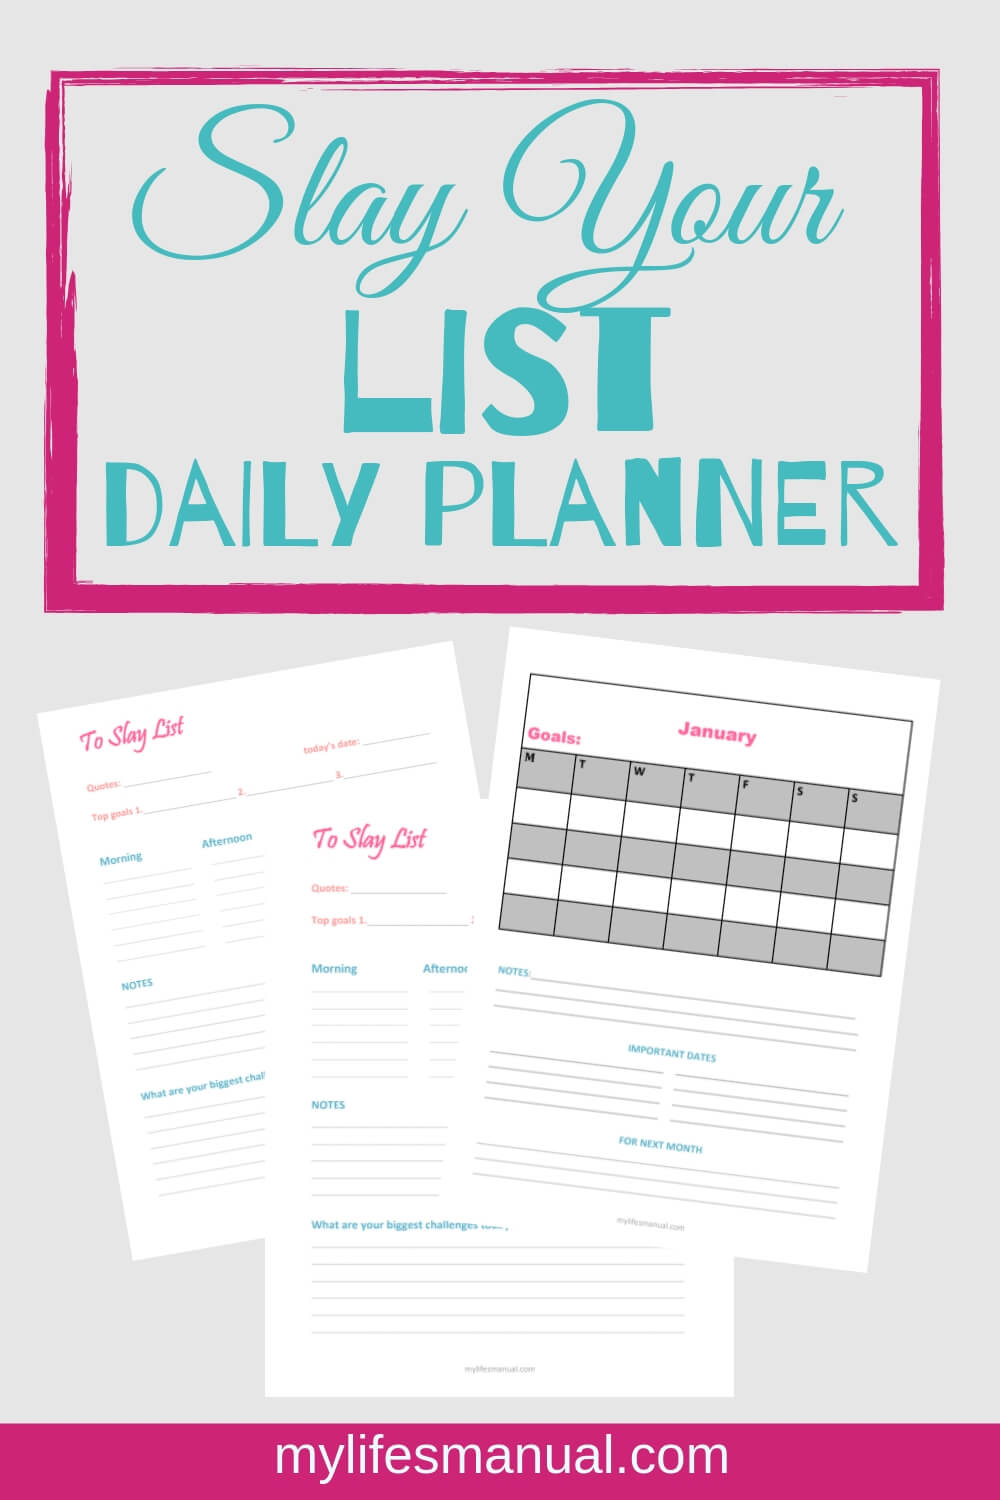 To slay List daily planner